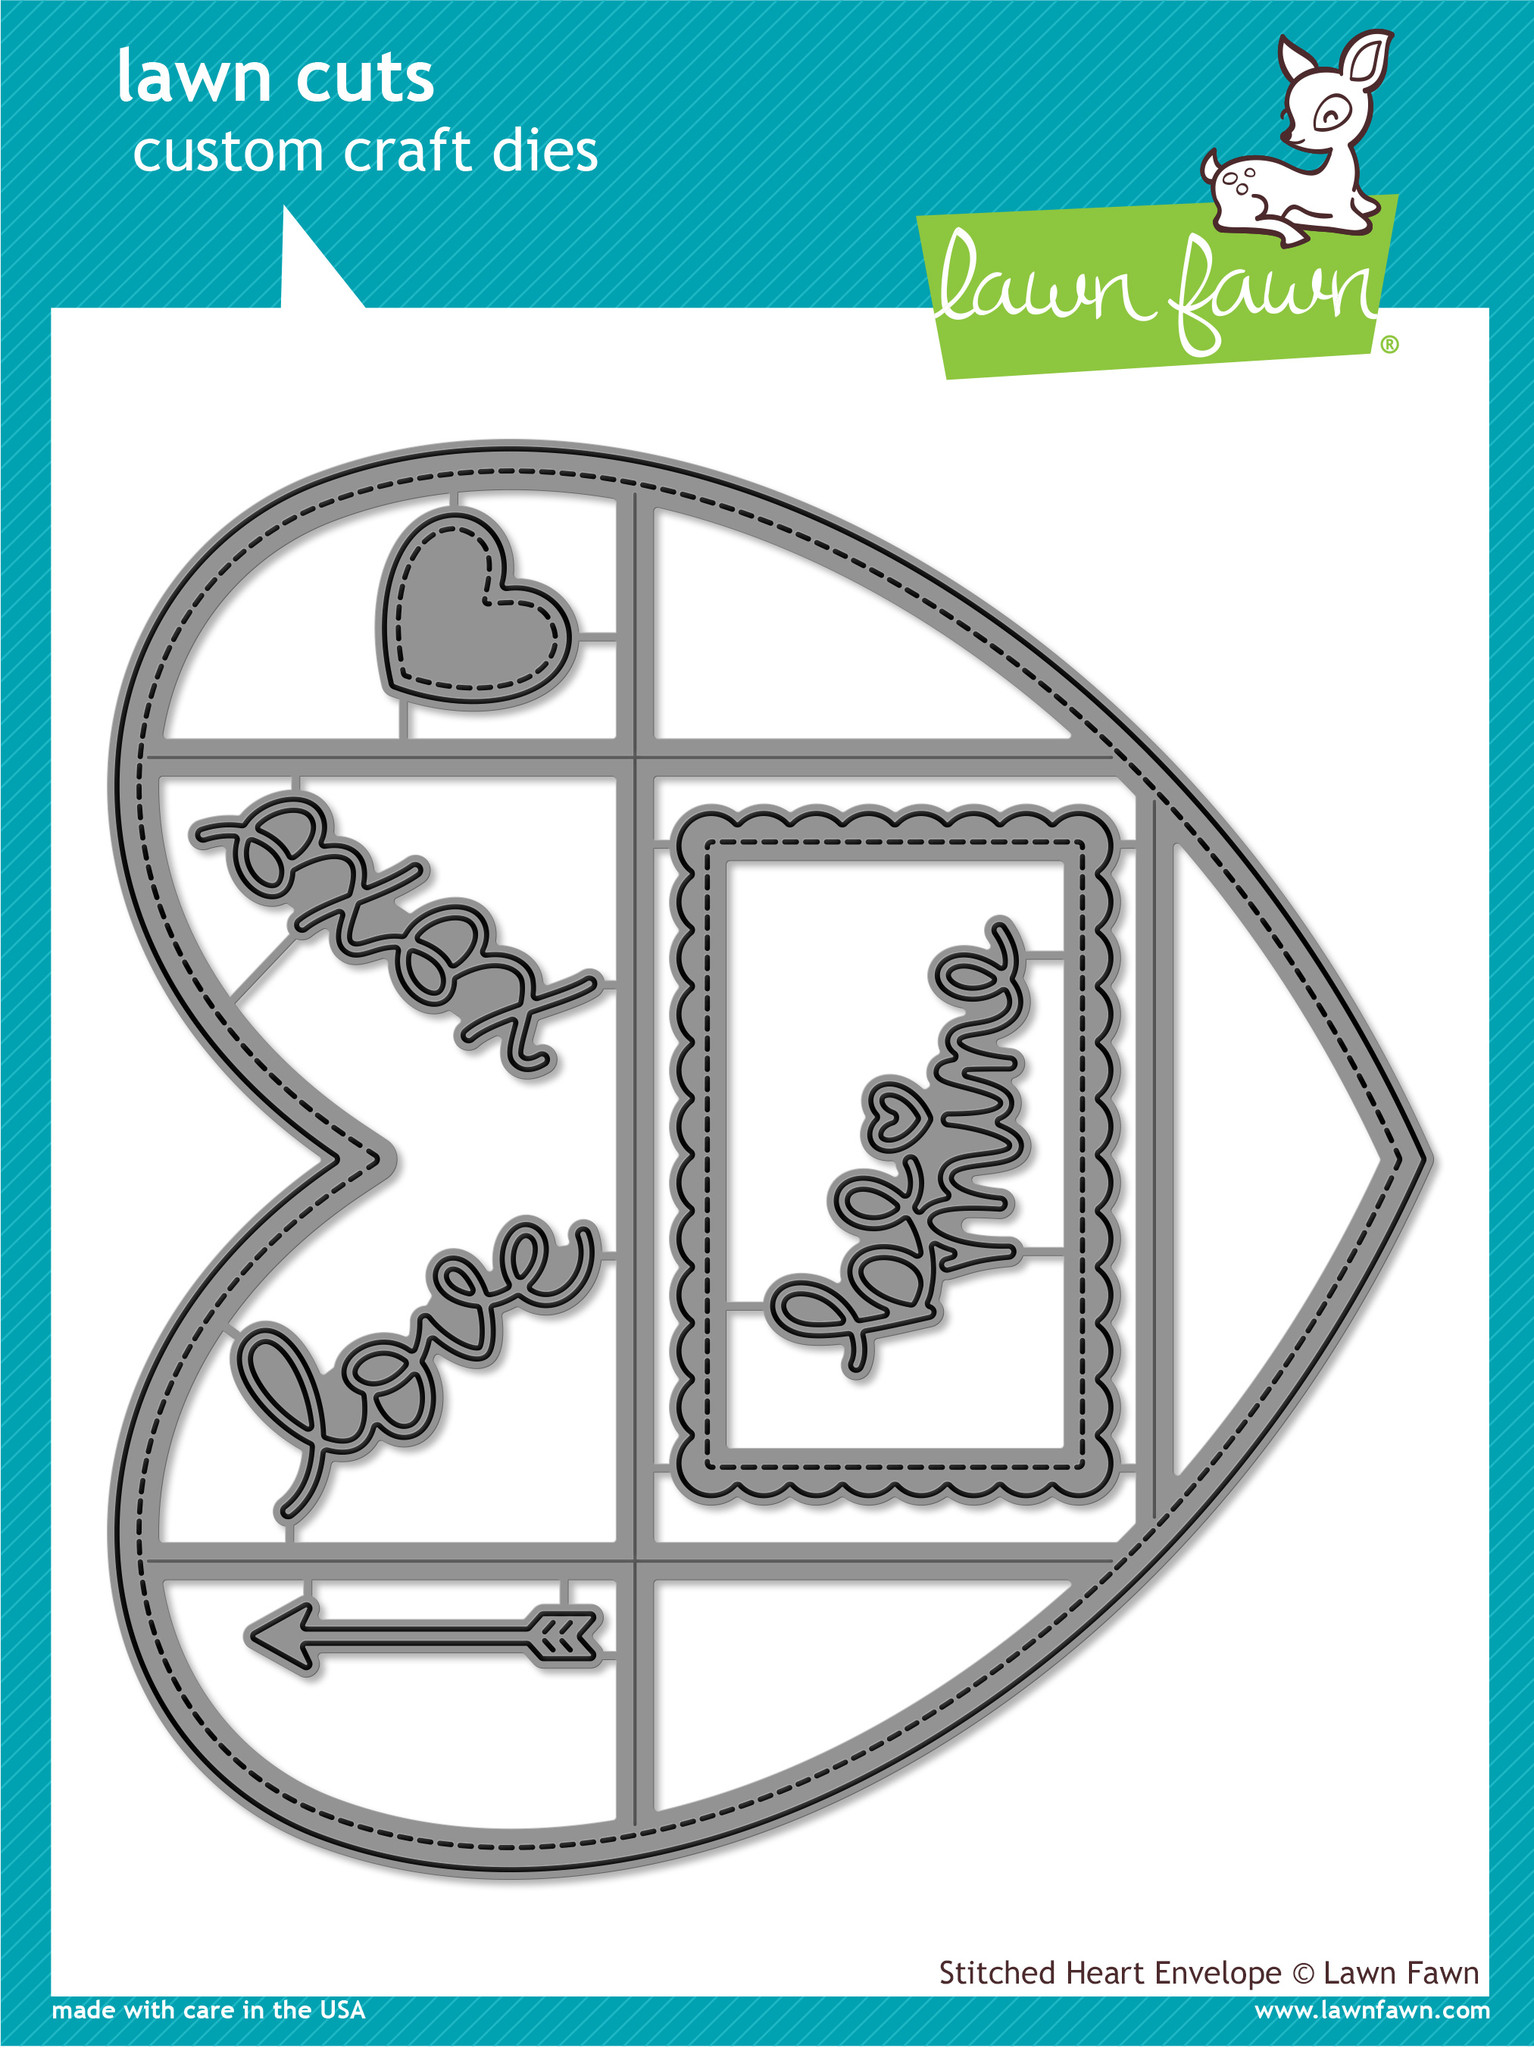 JS* Lawn Fawn- Lawn Cuts - Stitched Heart Envelope